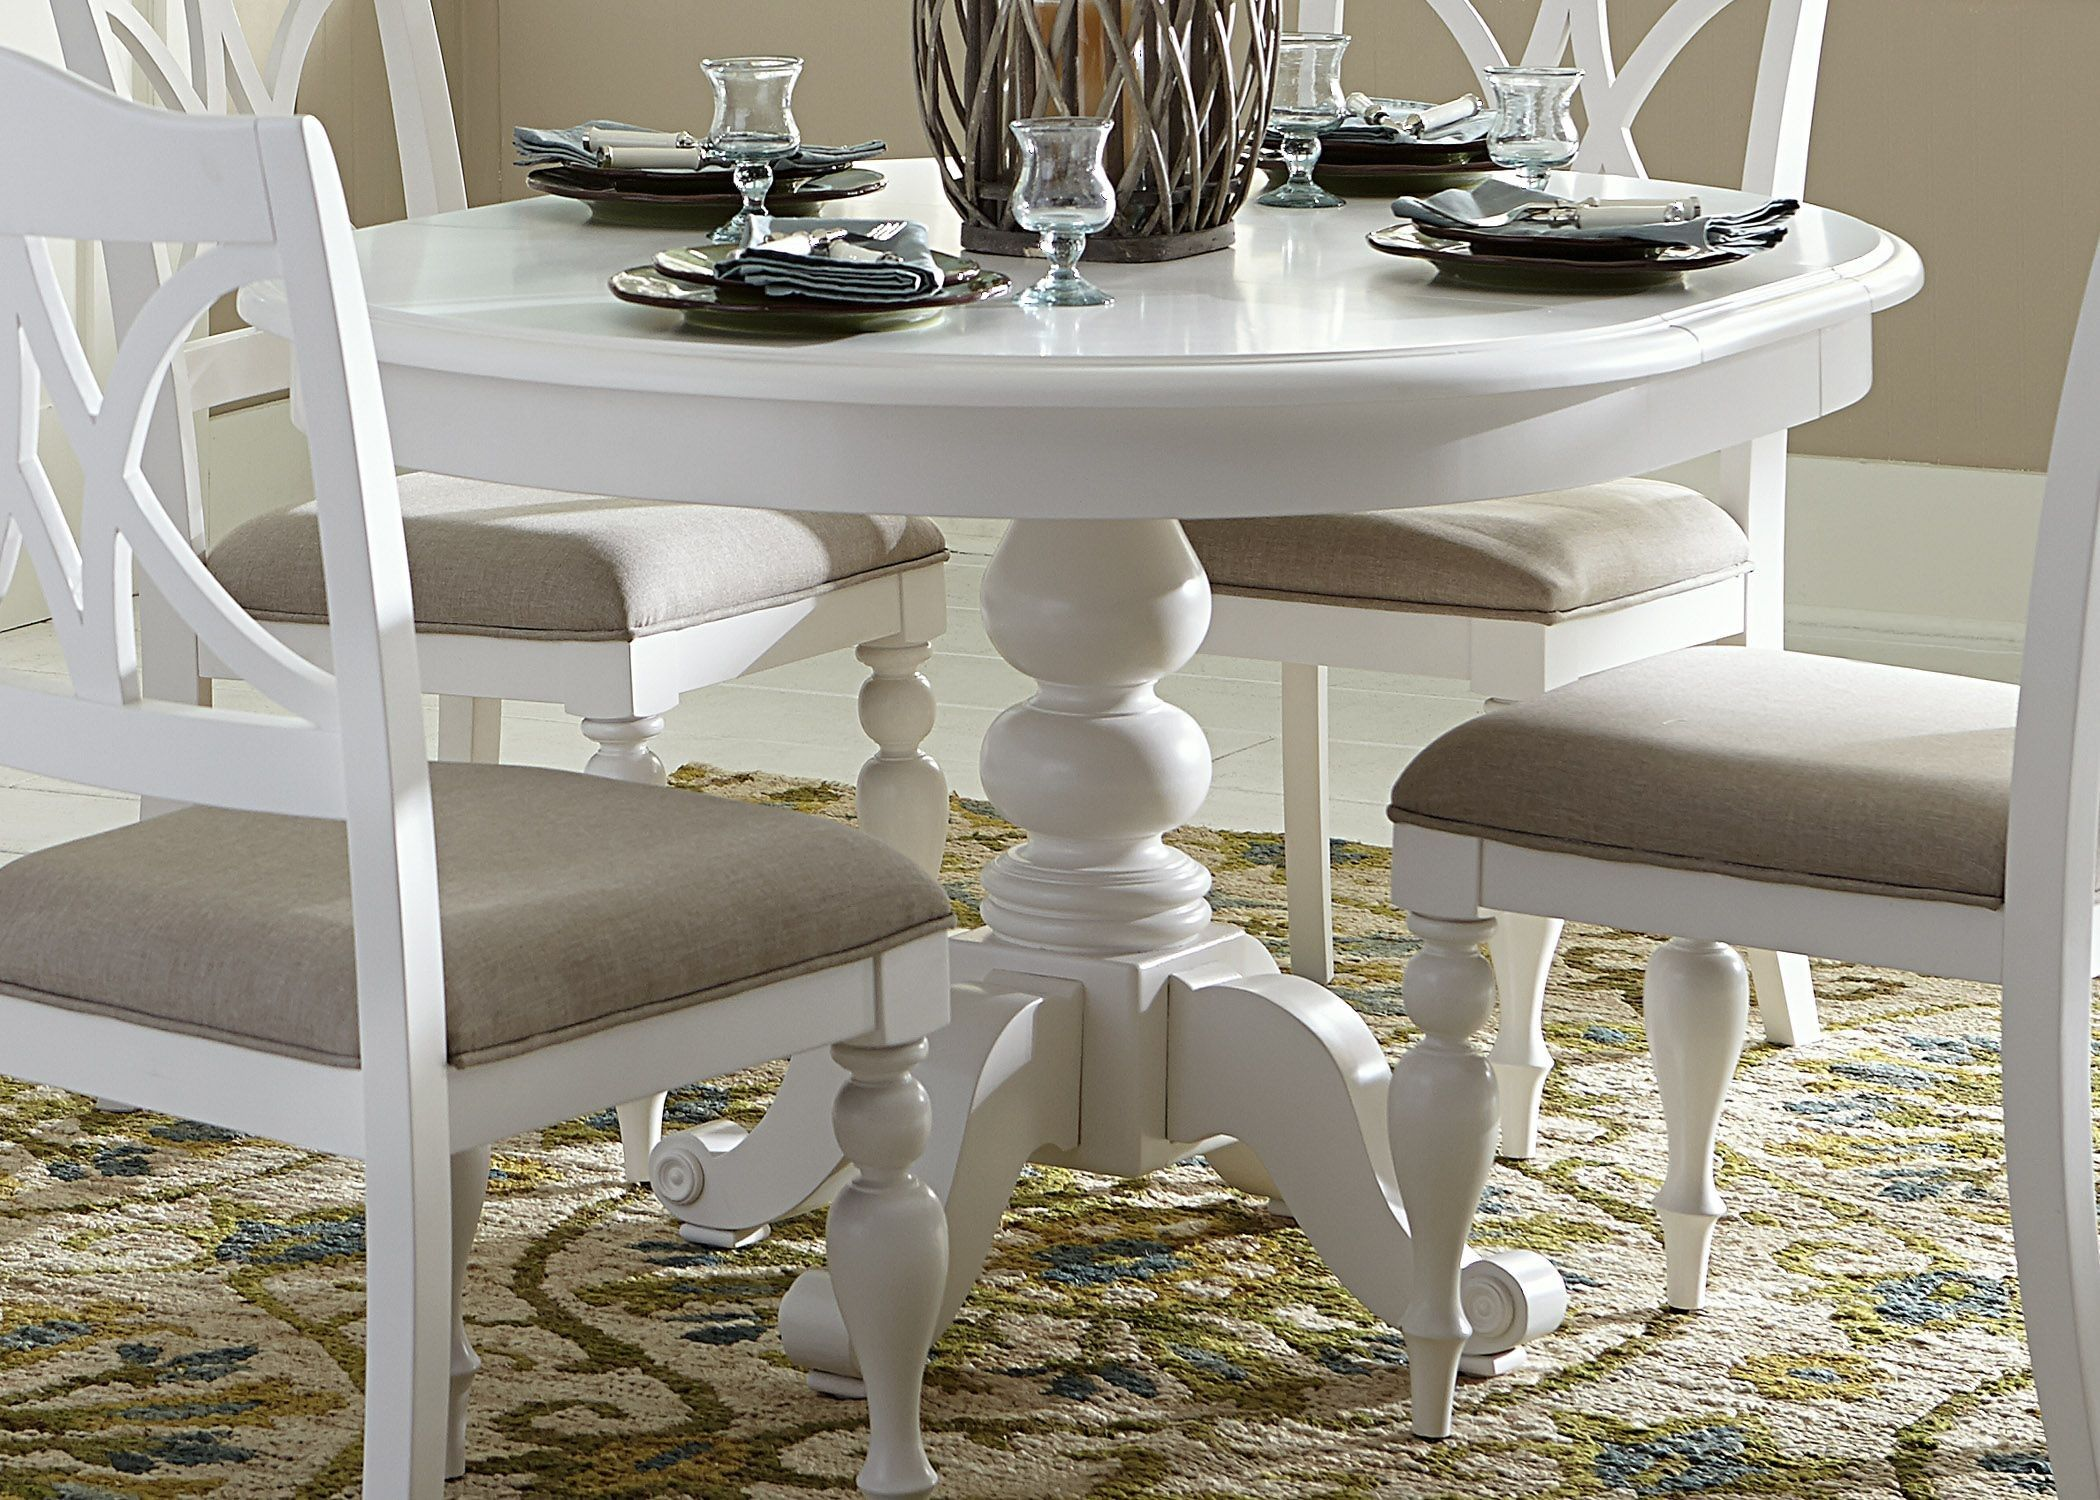 Dining Room Pedestal Table Beauteous Summer House Oyster White Oyster White Round Pedestal Dining Table Review